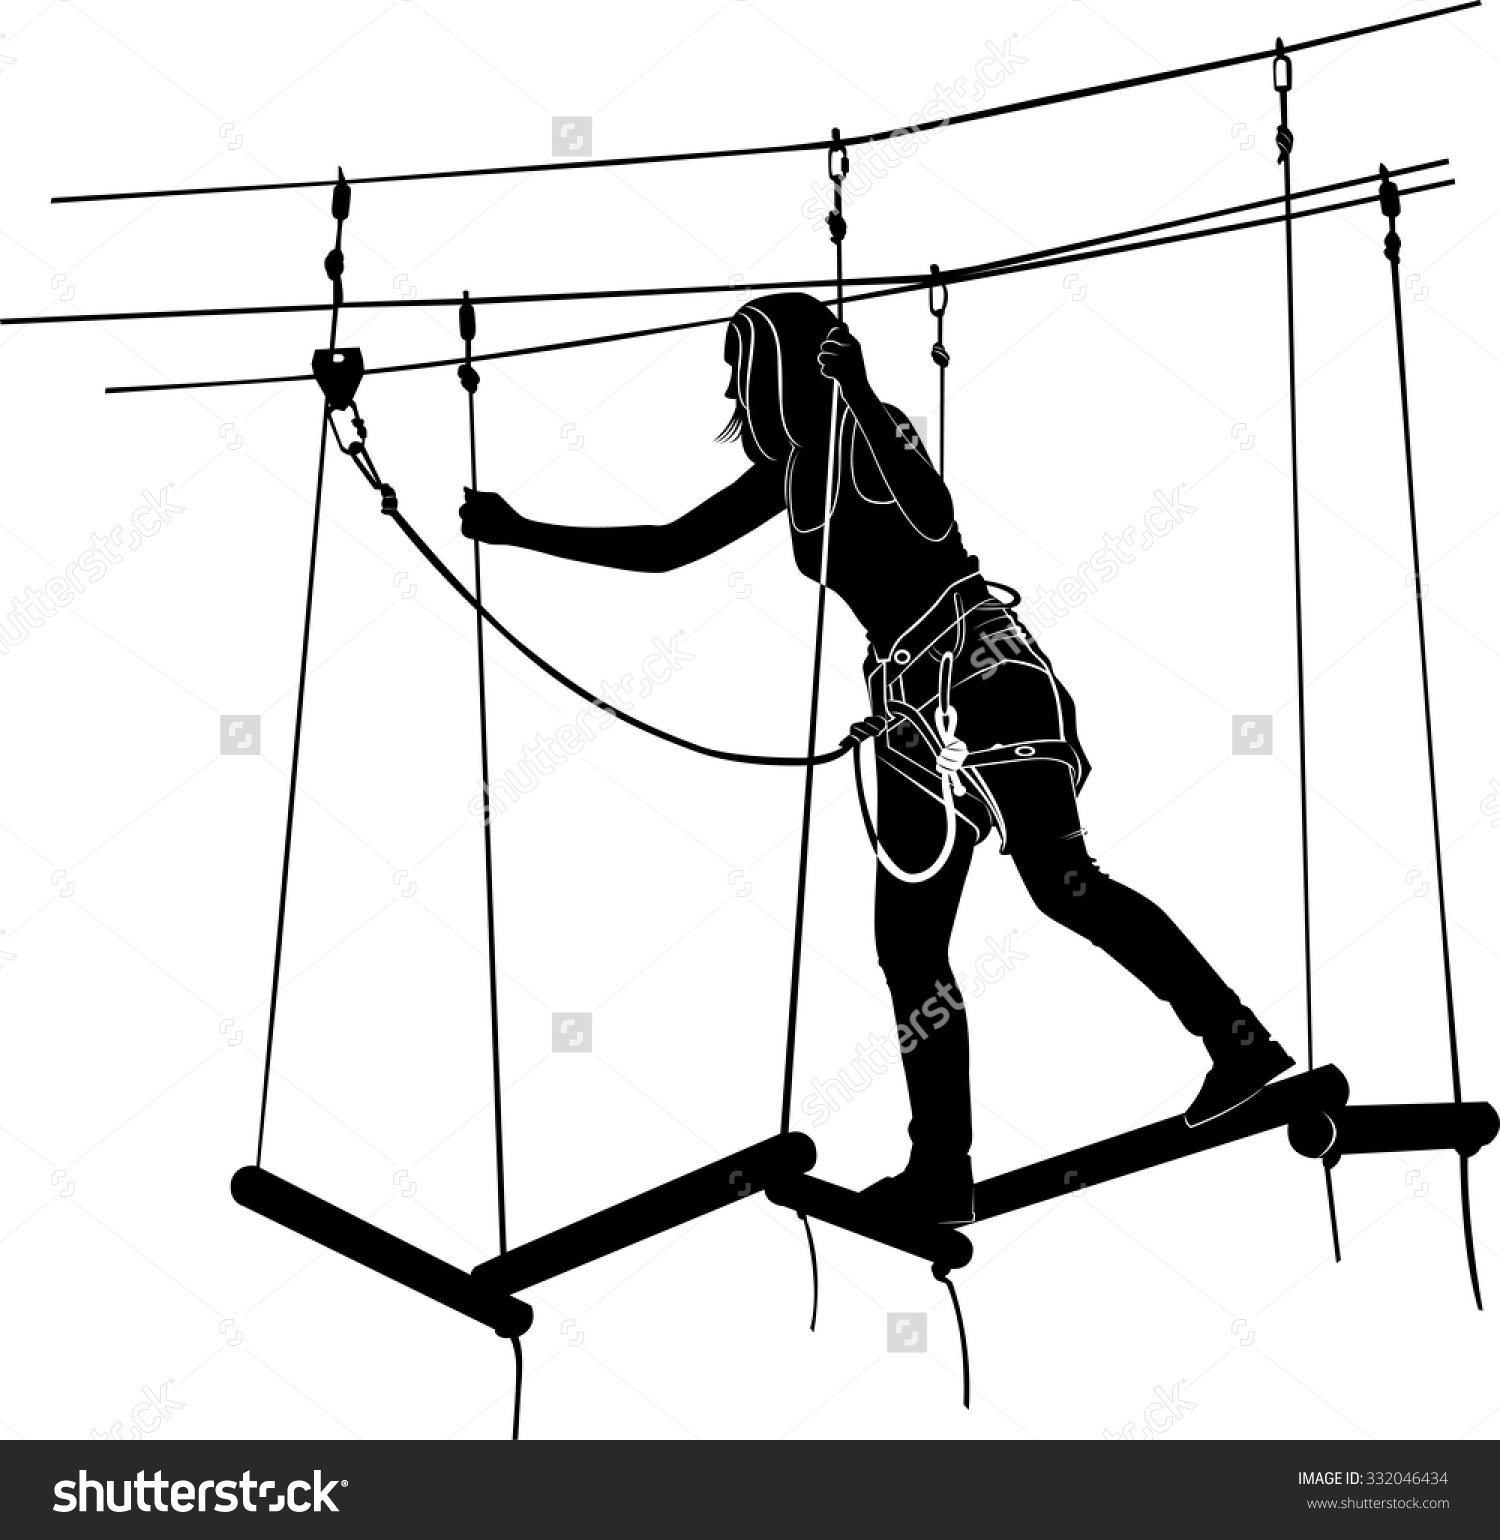 Children Adventure Park Rope Ladder Stock Vector 332046434.